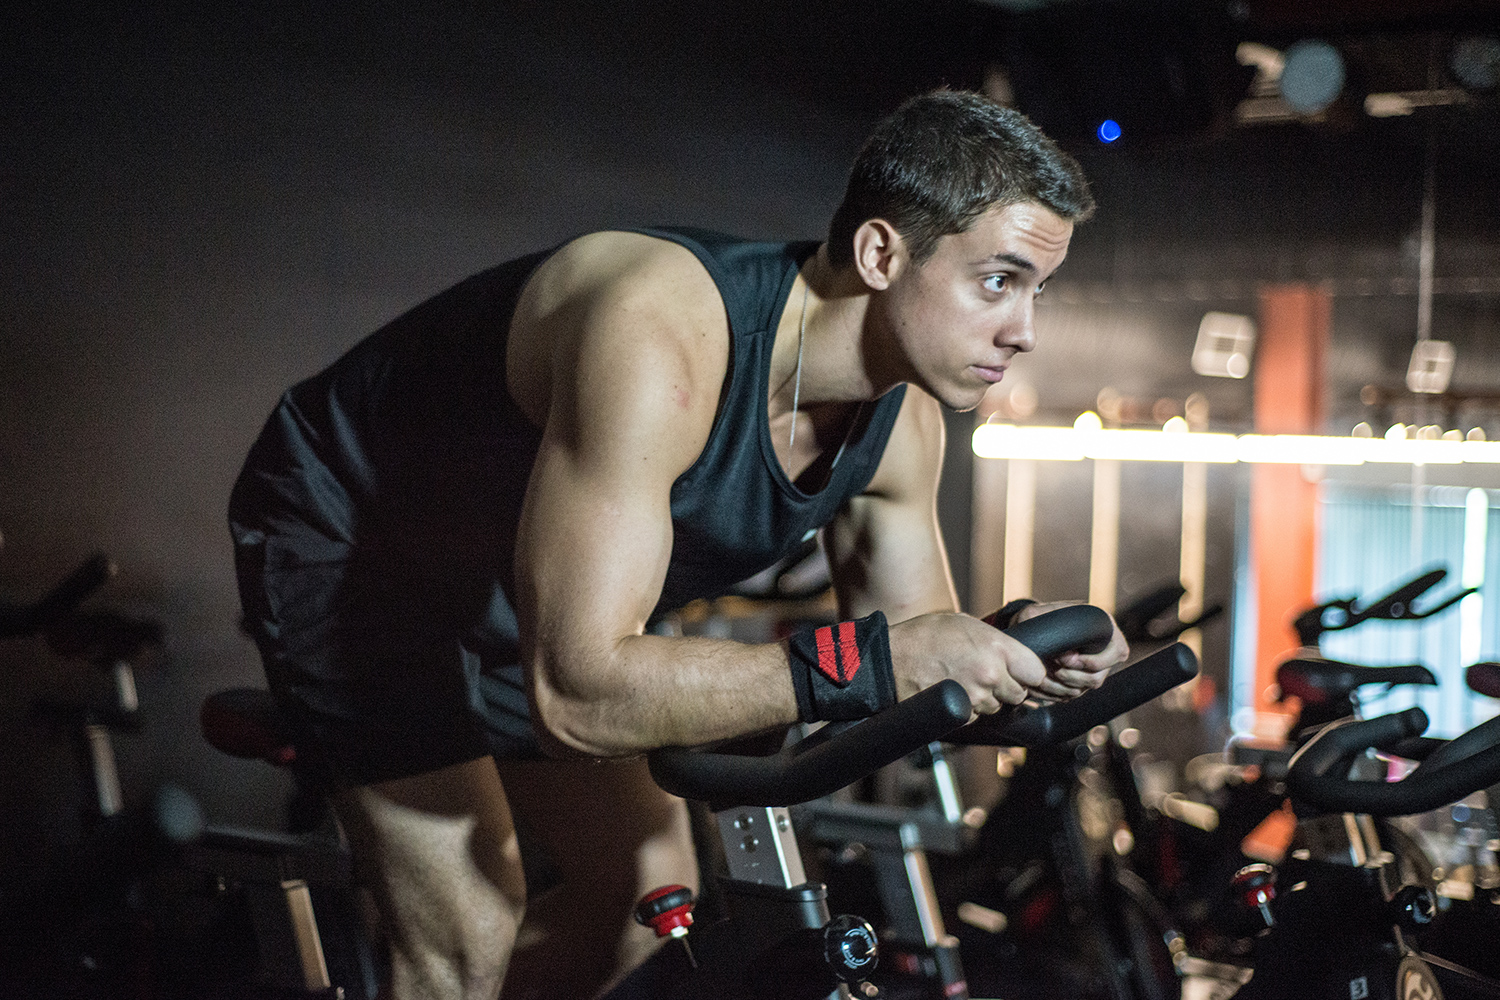 How Effective is Cardio for Burning Fat and Calories?